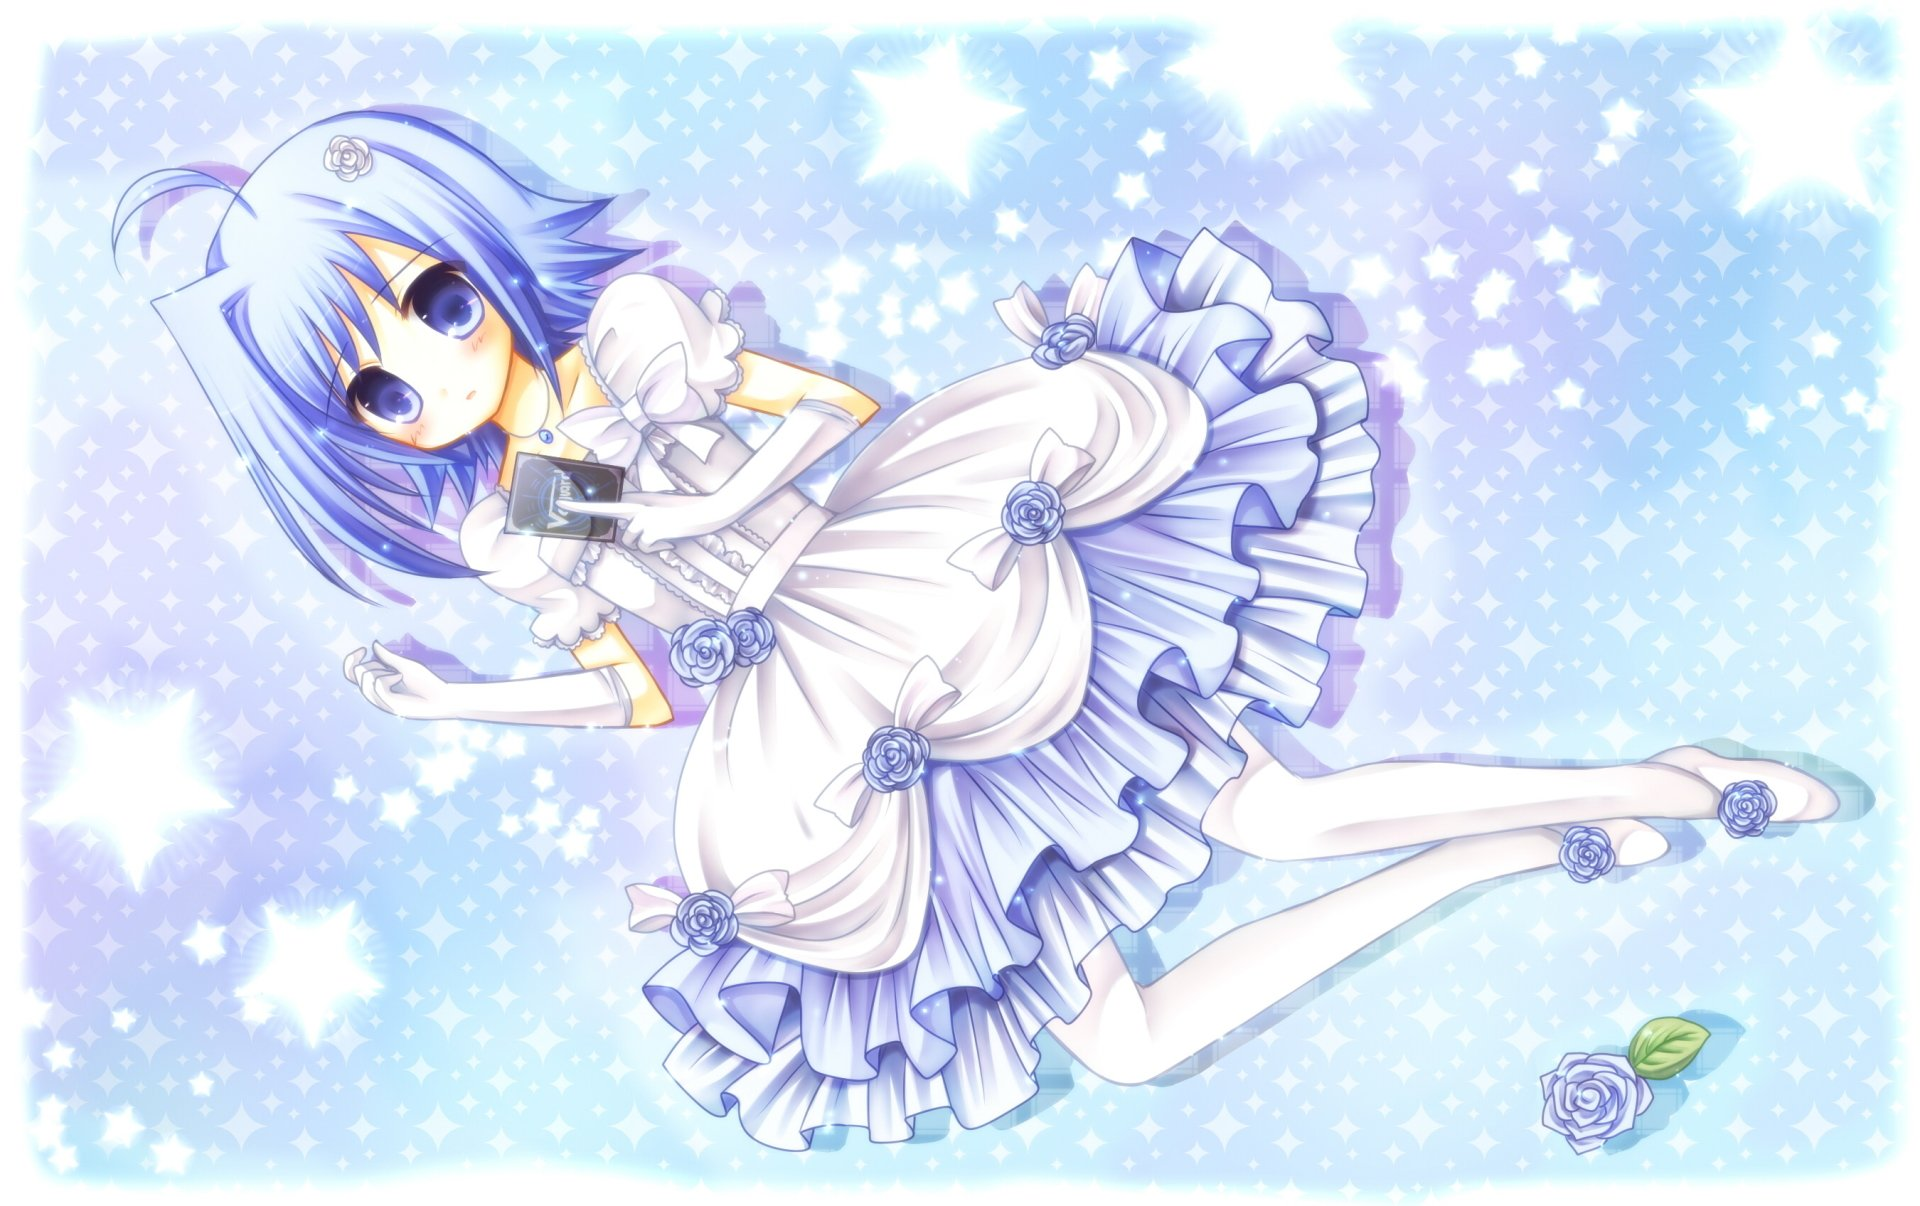 Anime - Cardfight!! Vanguard  Wallpaper